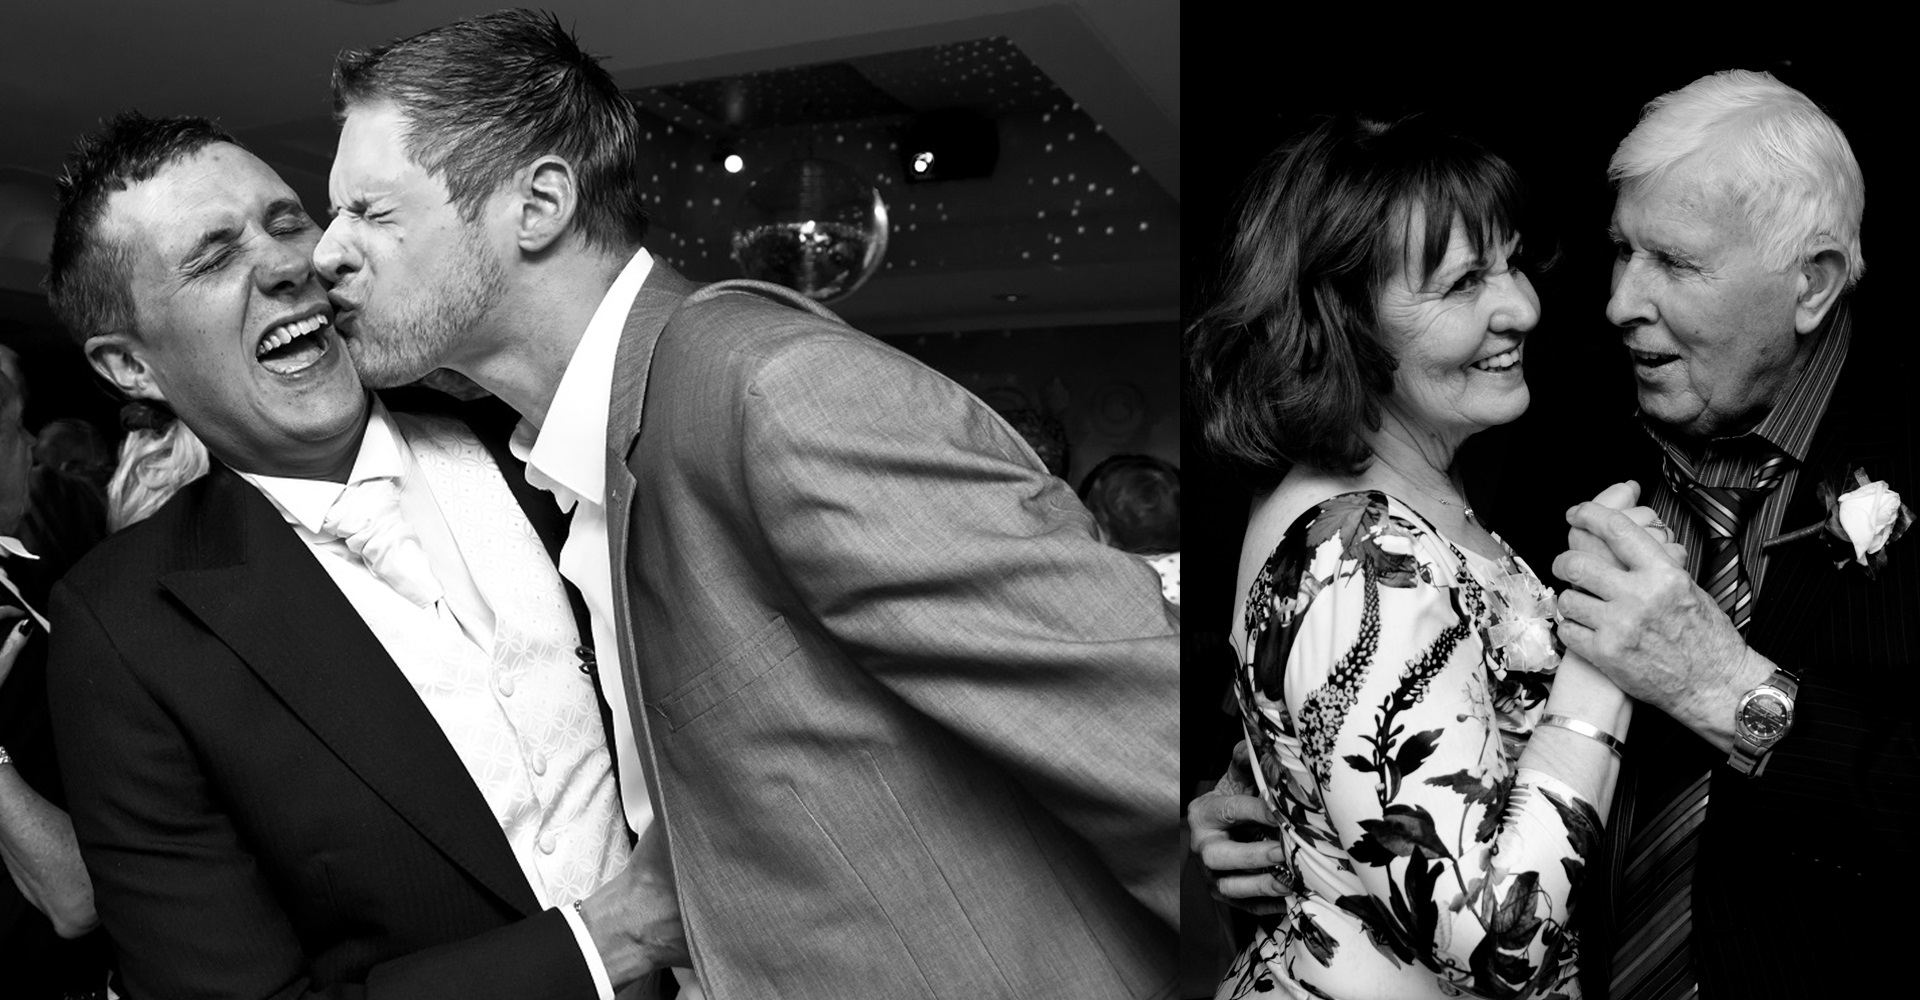 chris-fossey-photography-warwickshire-stratford-upon-avon-wedding-commercial-event-photographer-uk-based